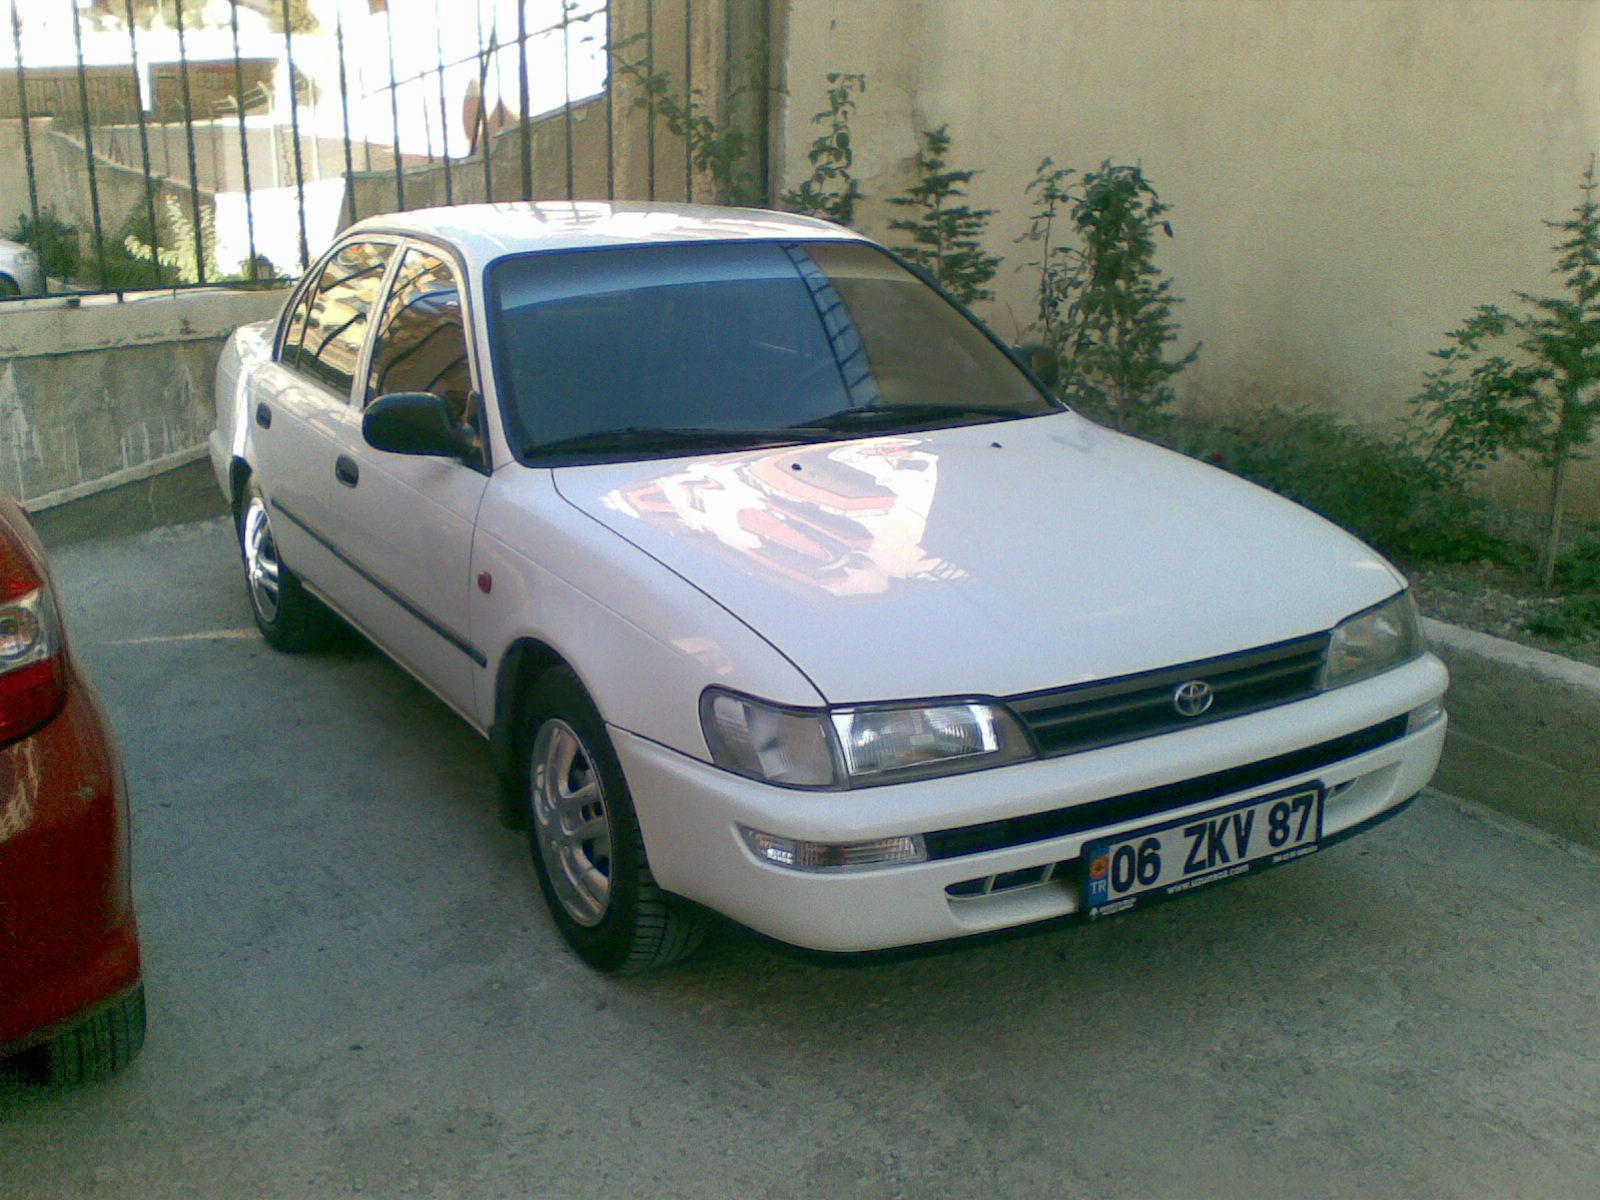 &&& 92---98 efsane toyota corolla klubÜ &&&page 299 of 481